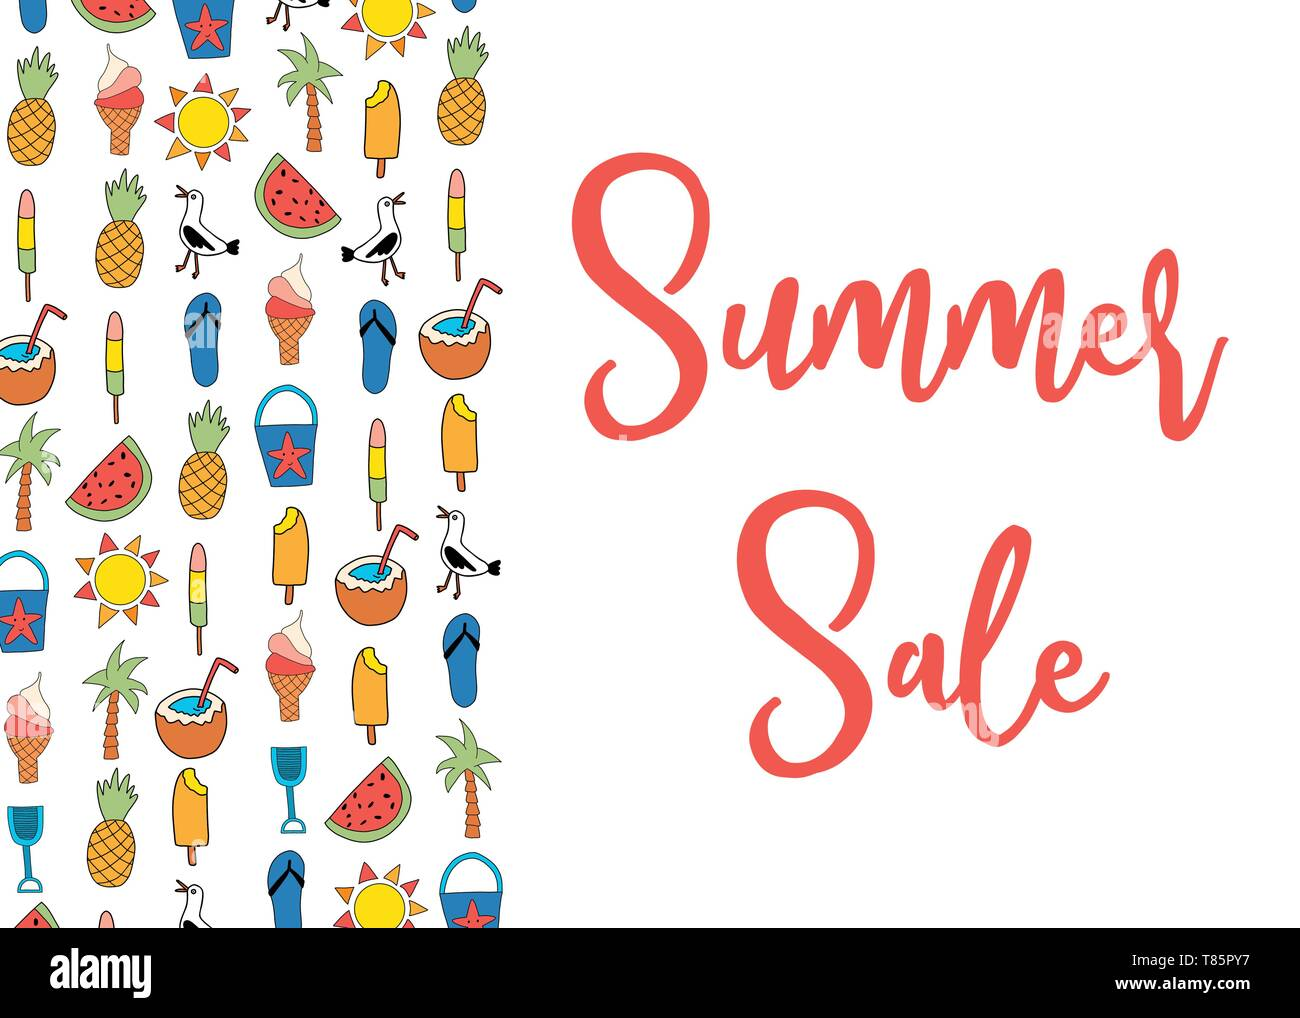 Sale banner vector with summer icons pattern  Watermelon